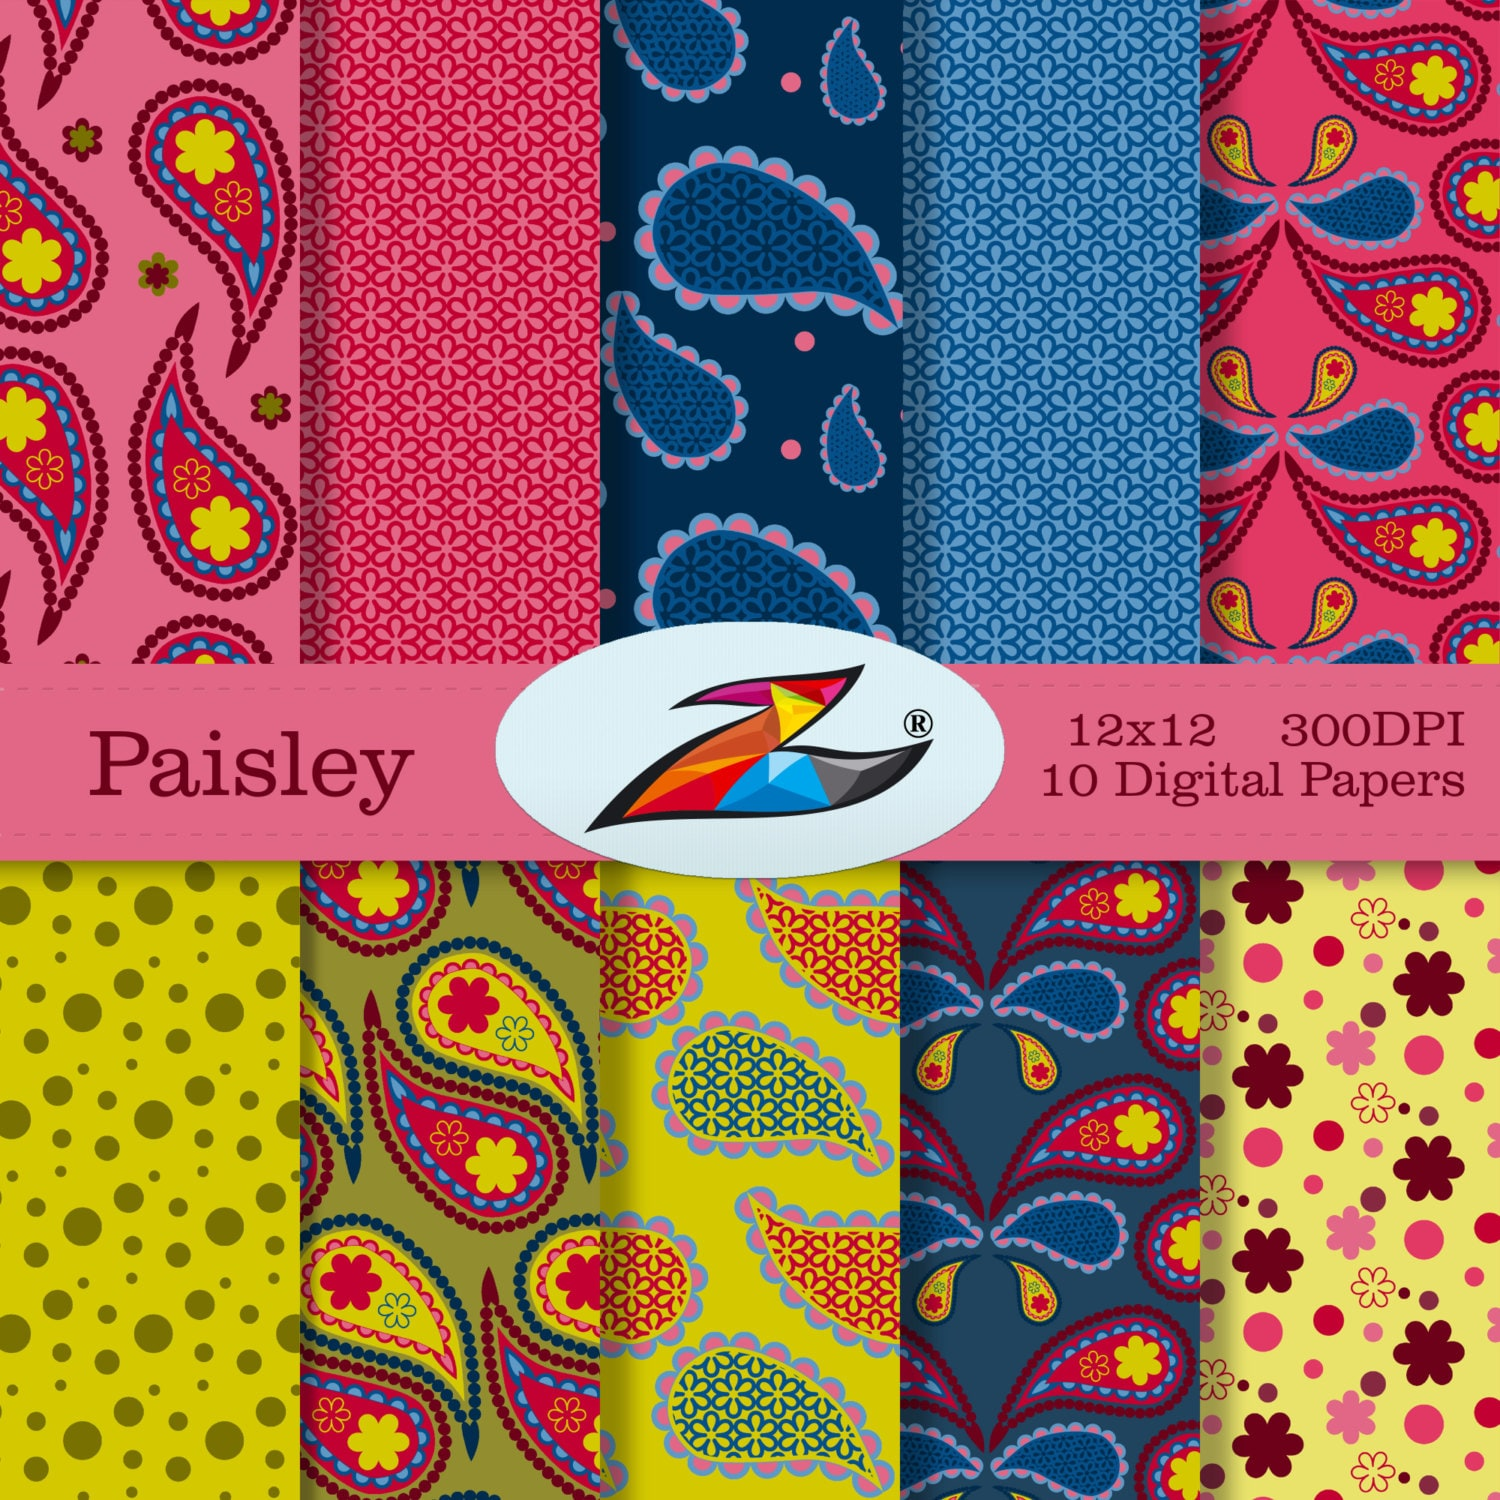 labor day sale paisley digital paper floral background etsy. Black Bedroom Furniture Sets. Home Design Ideas